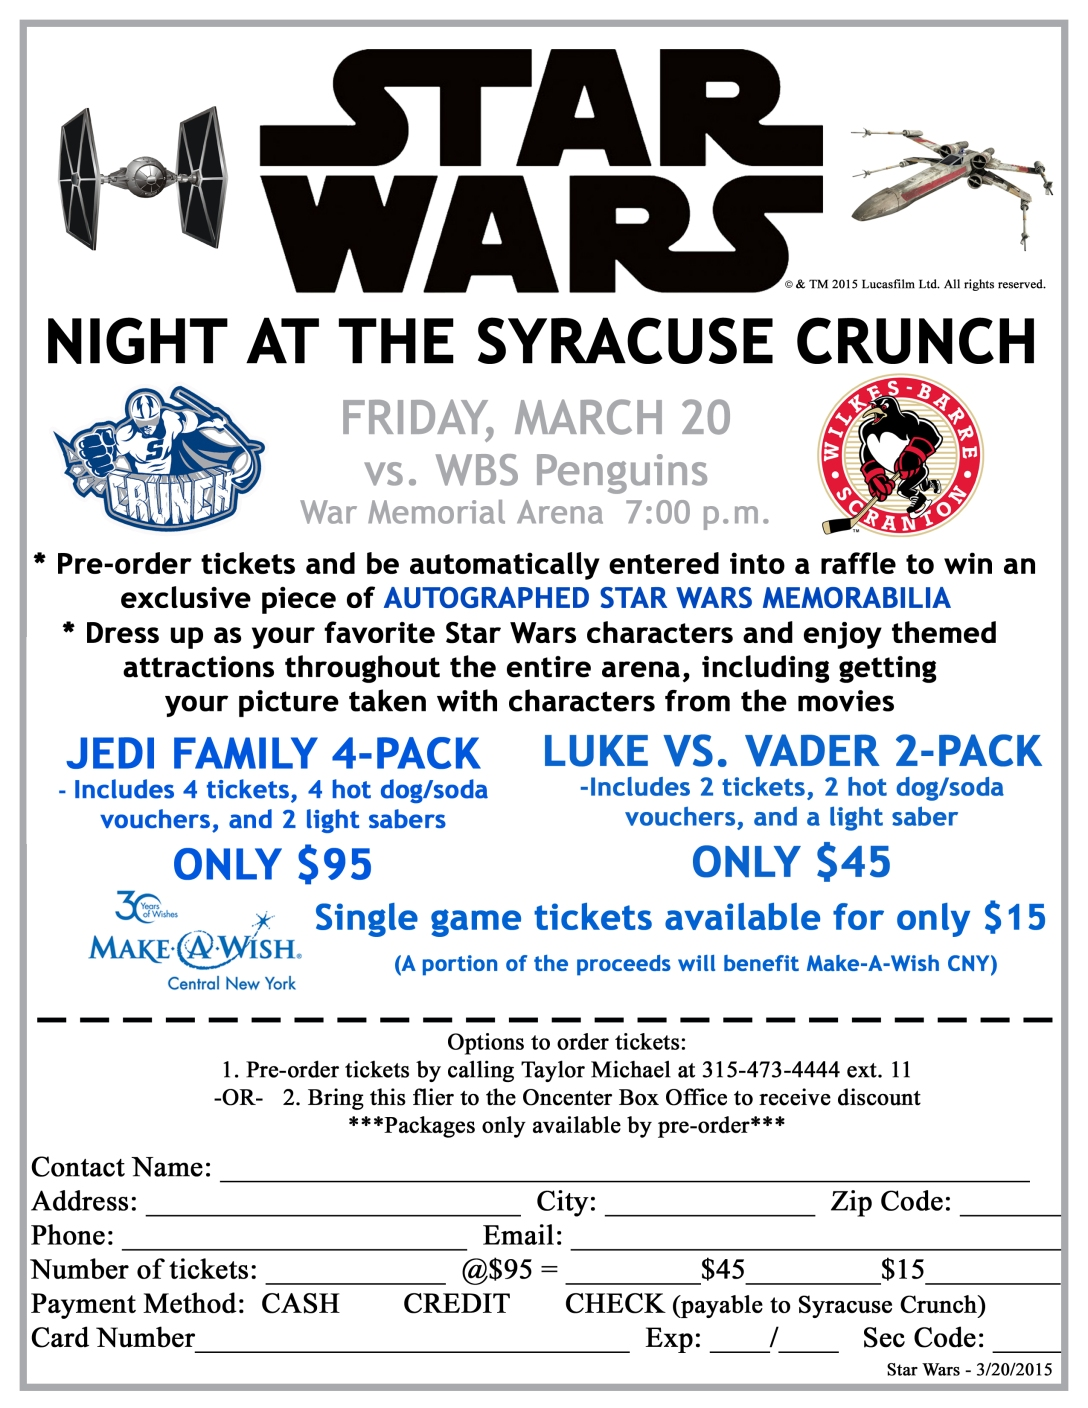 Star Wars Ticket Packages